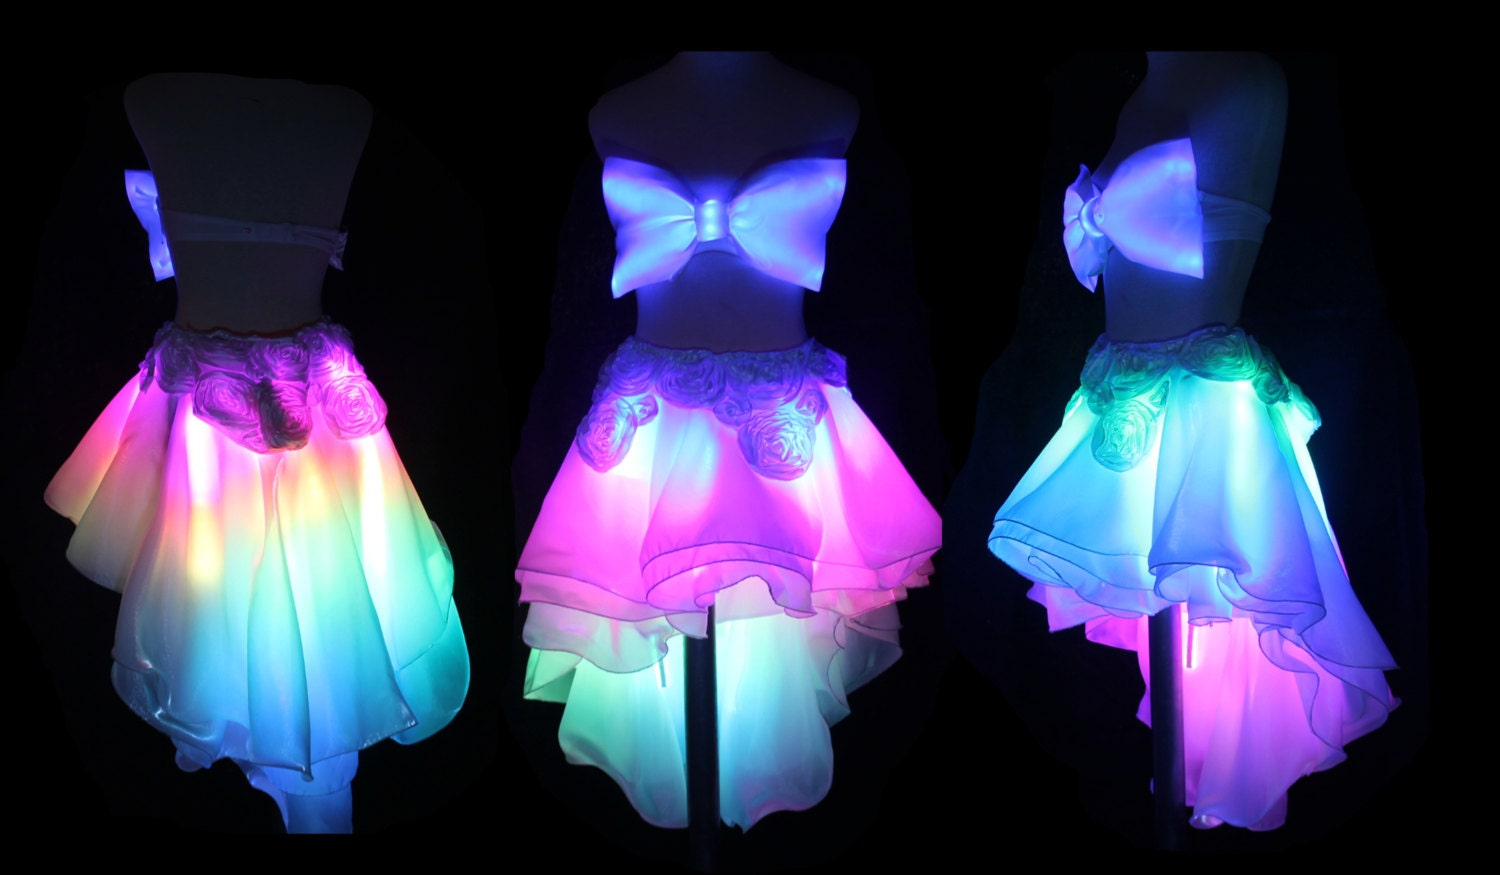 led skirt lightup clothing led couture by illuminatedcouture. Black Bedroom Furniture Sets. Home Design Ideas